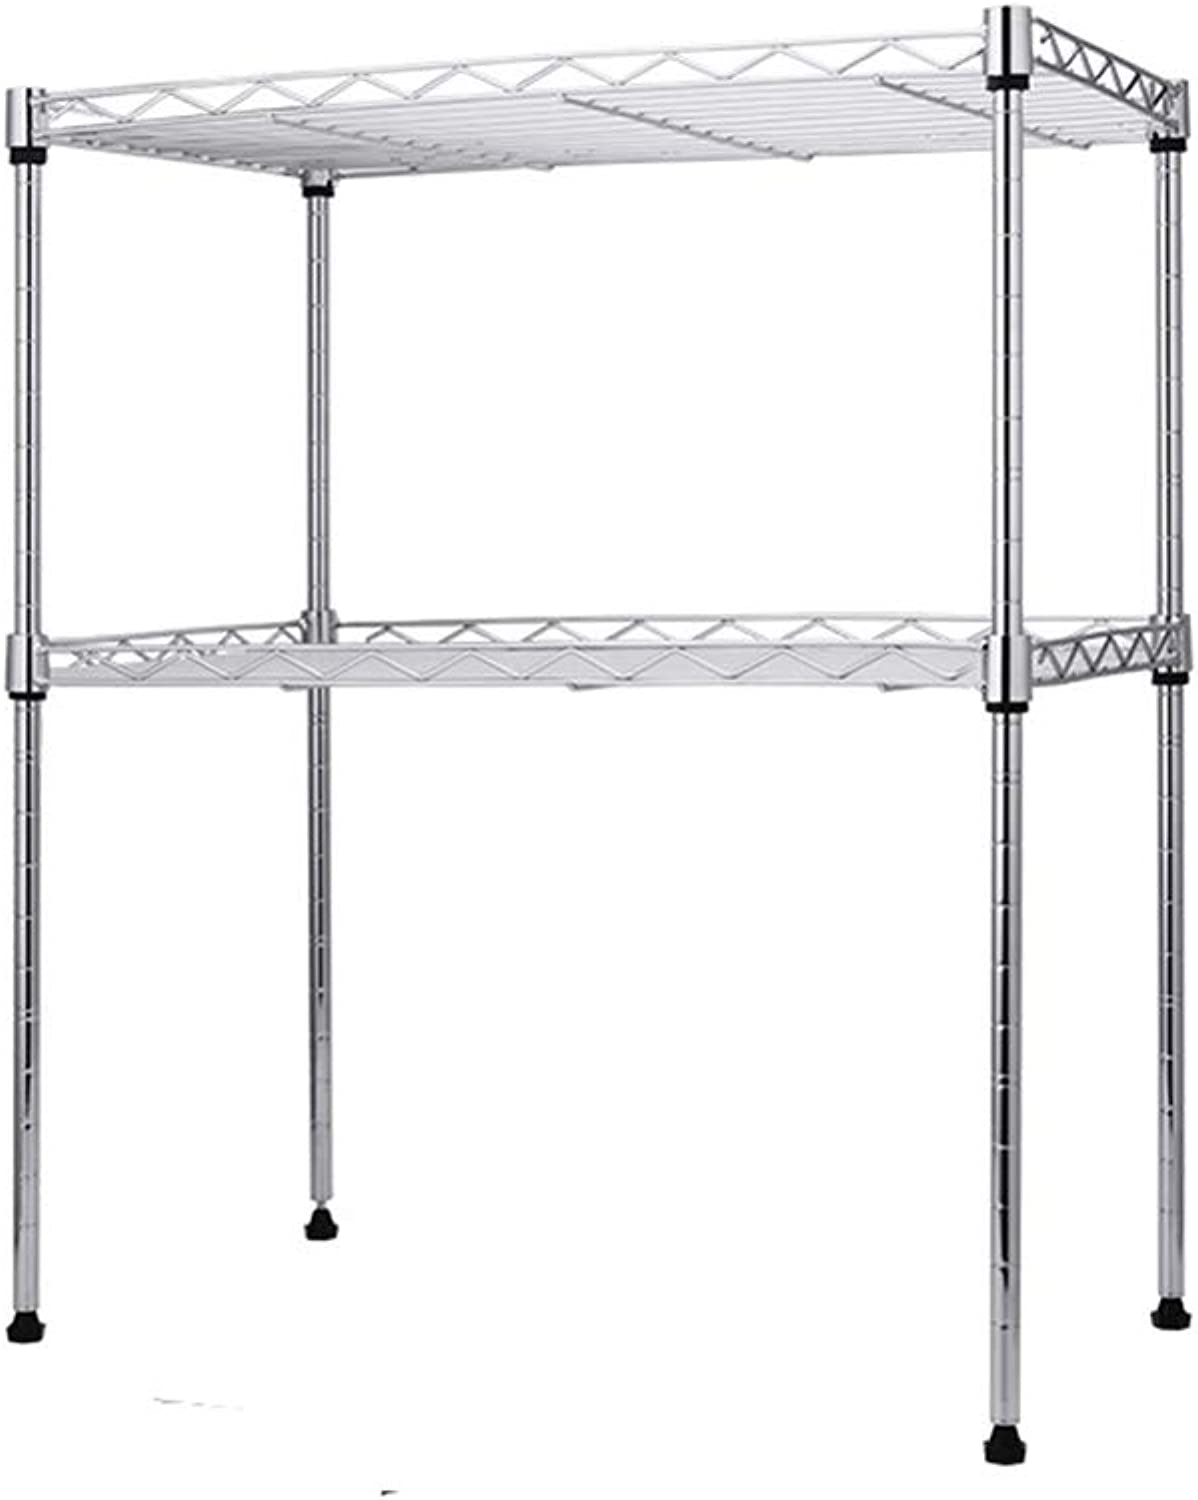 Microwave Oven Rack,Double Microwave Oven Stand Shelf Side Organizer Storage Unit Rack (Stainless Steel)